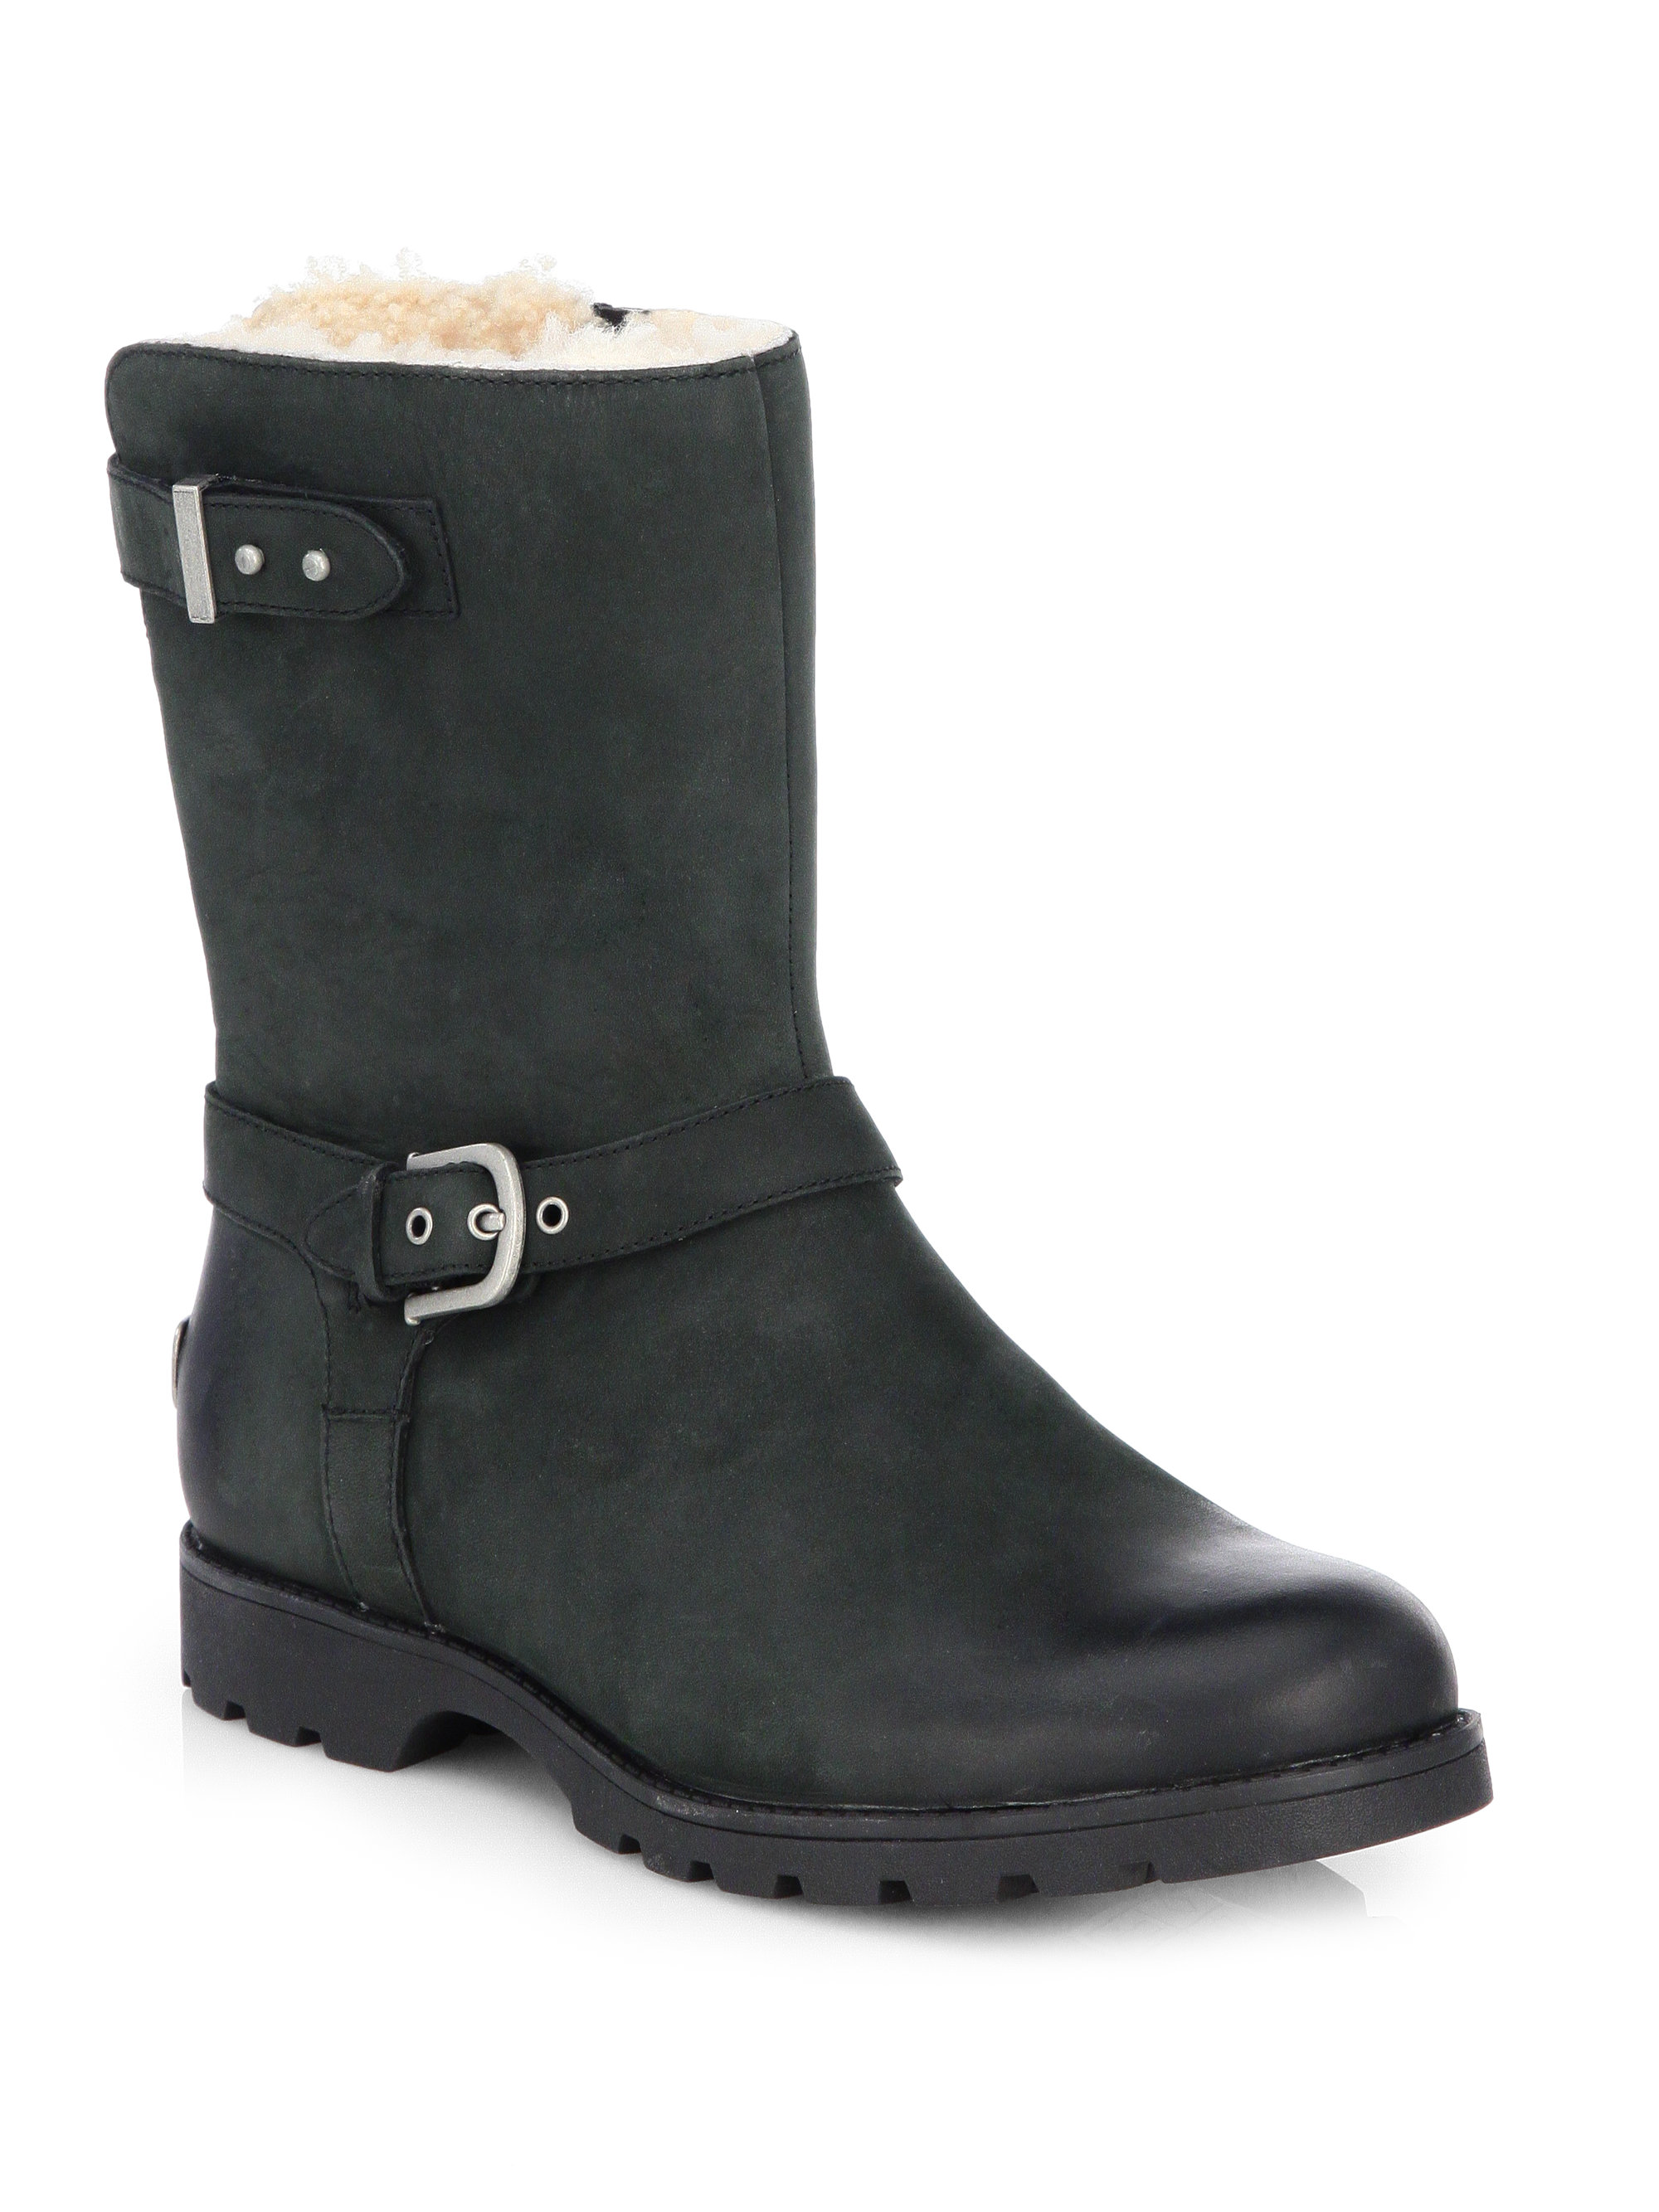 Ugg Grandle Leather Motorcycle Boots in Black | Lyst